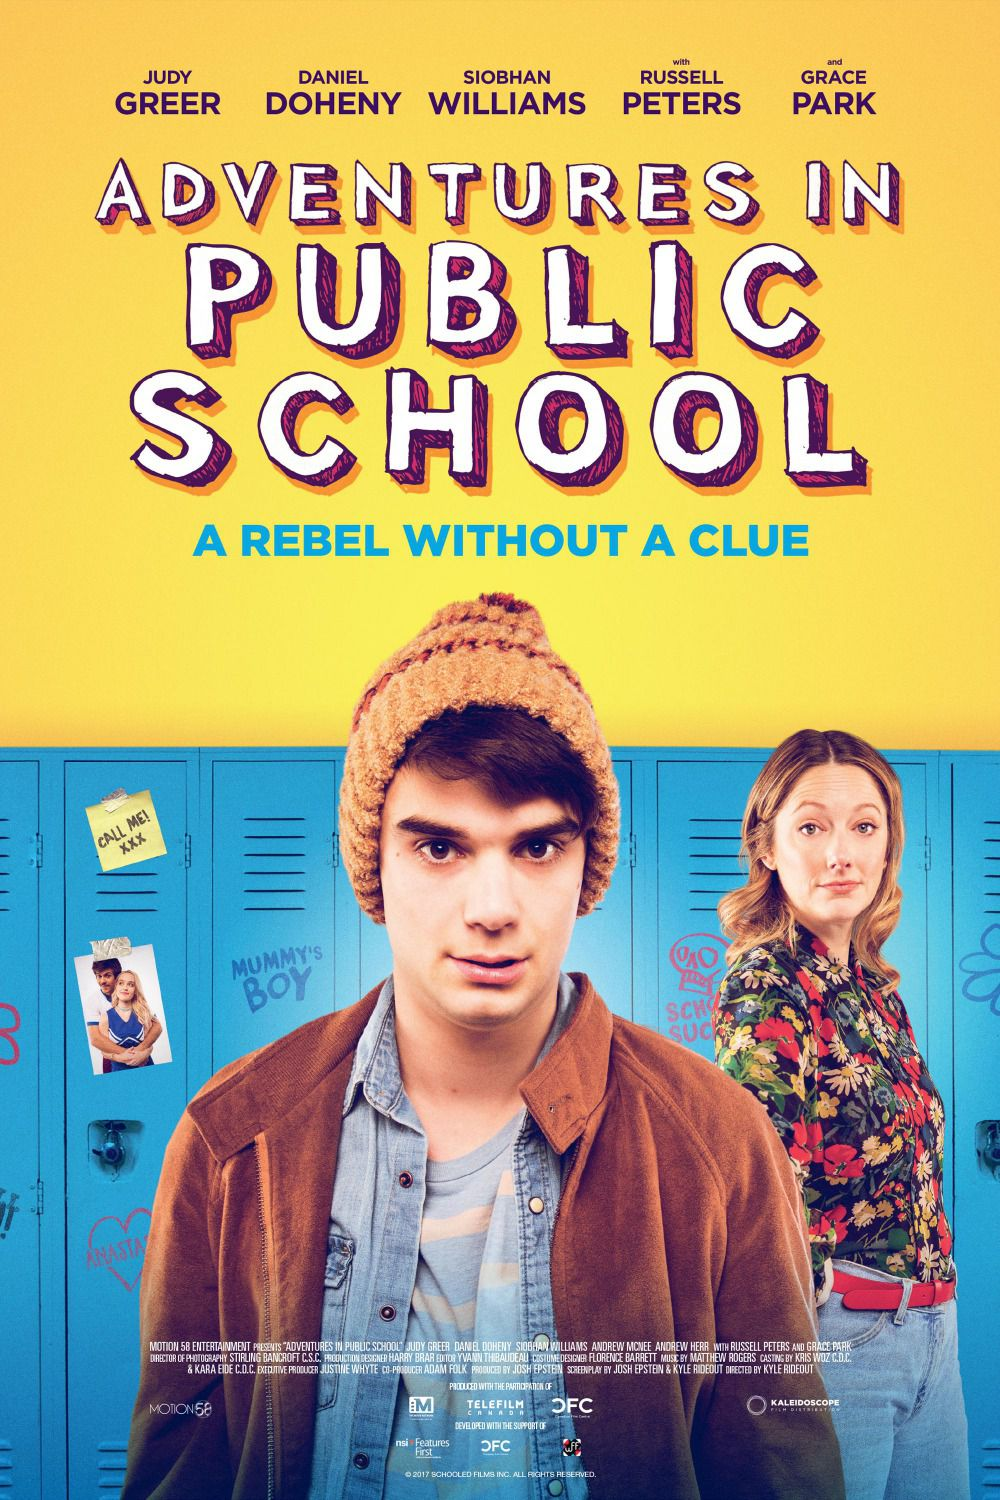 Adventures in Public School - Rebel without a Clue - Cast: Judy Greer, Daniel Doherty, Siobhan Williams, Russell Peters, Grace Park - poster